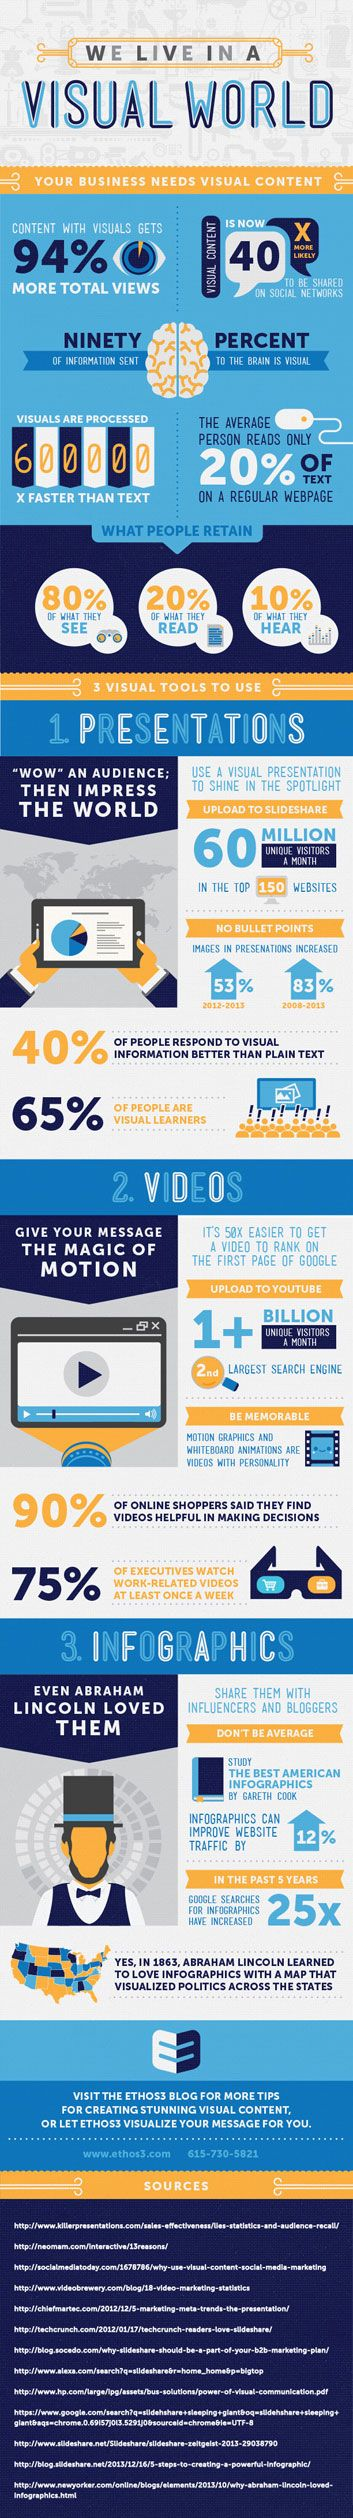 We Live in a Visual World Infographic #infographic #design #visual #communication